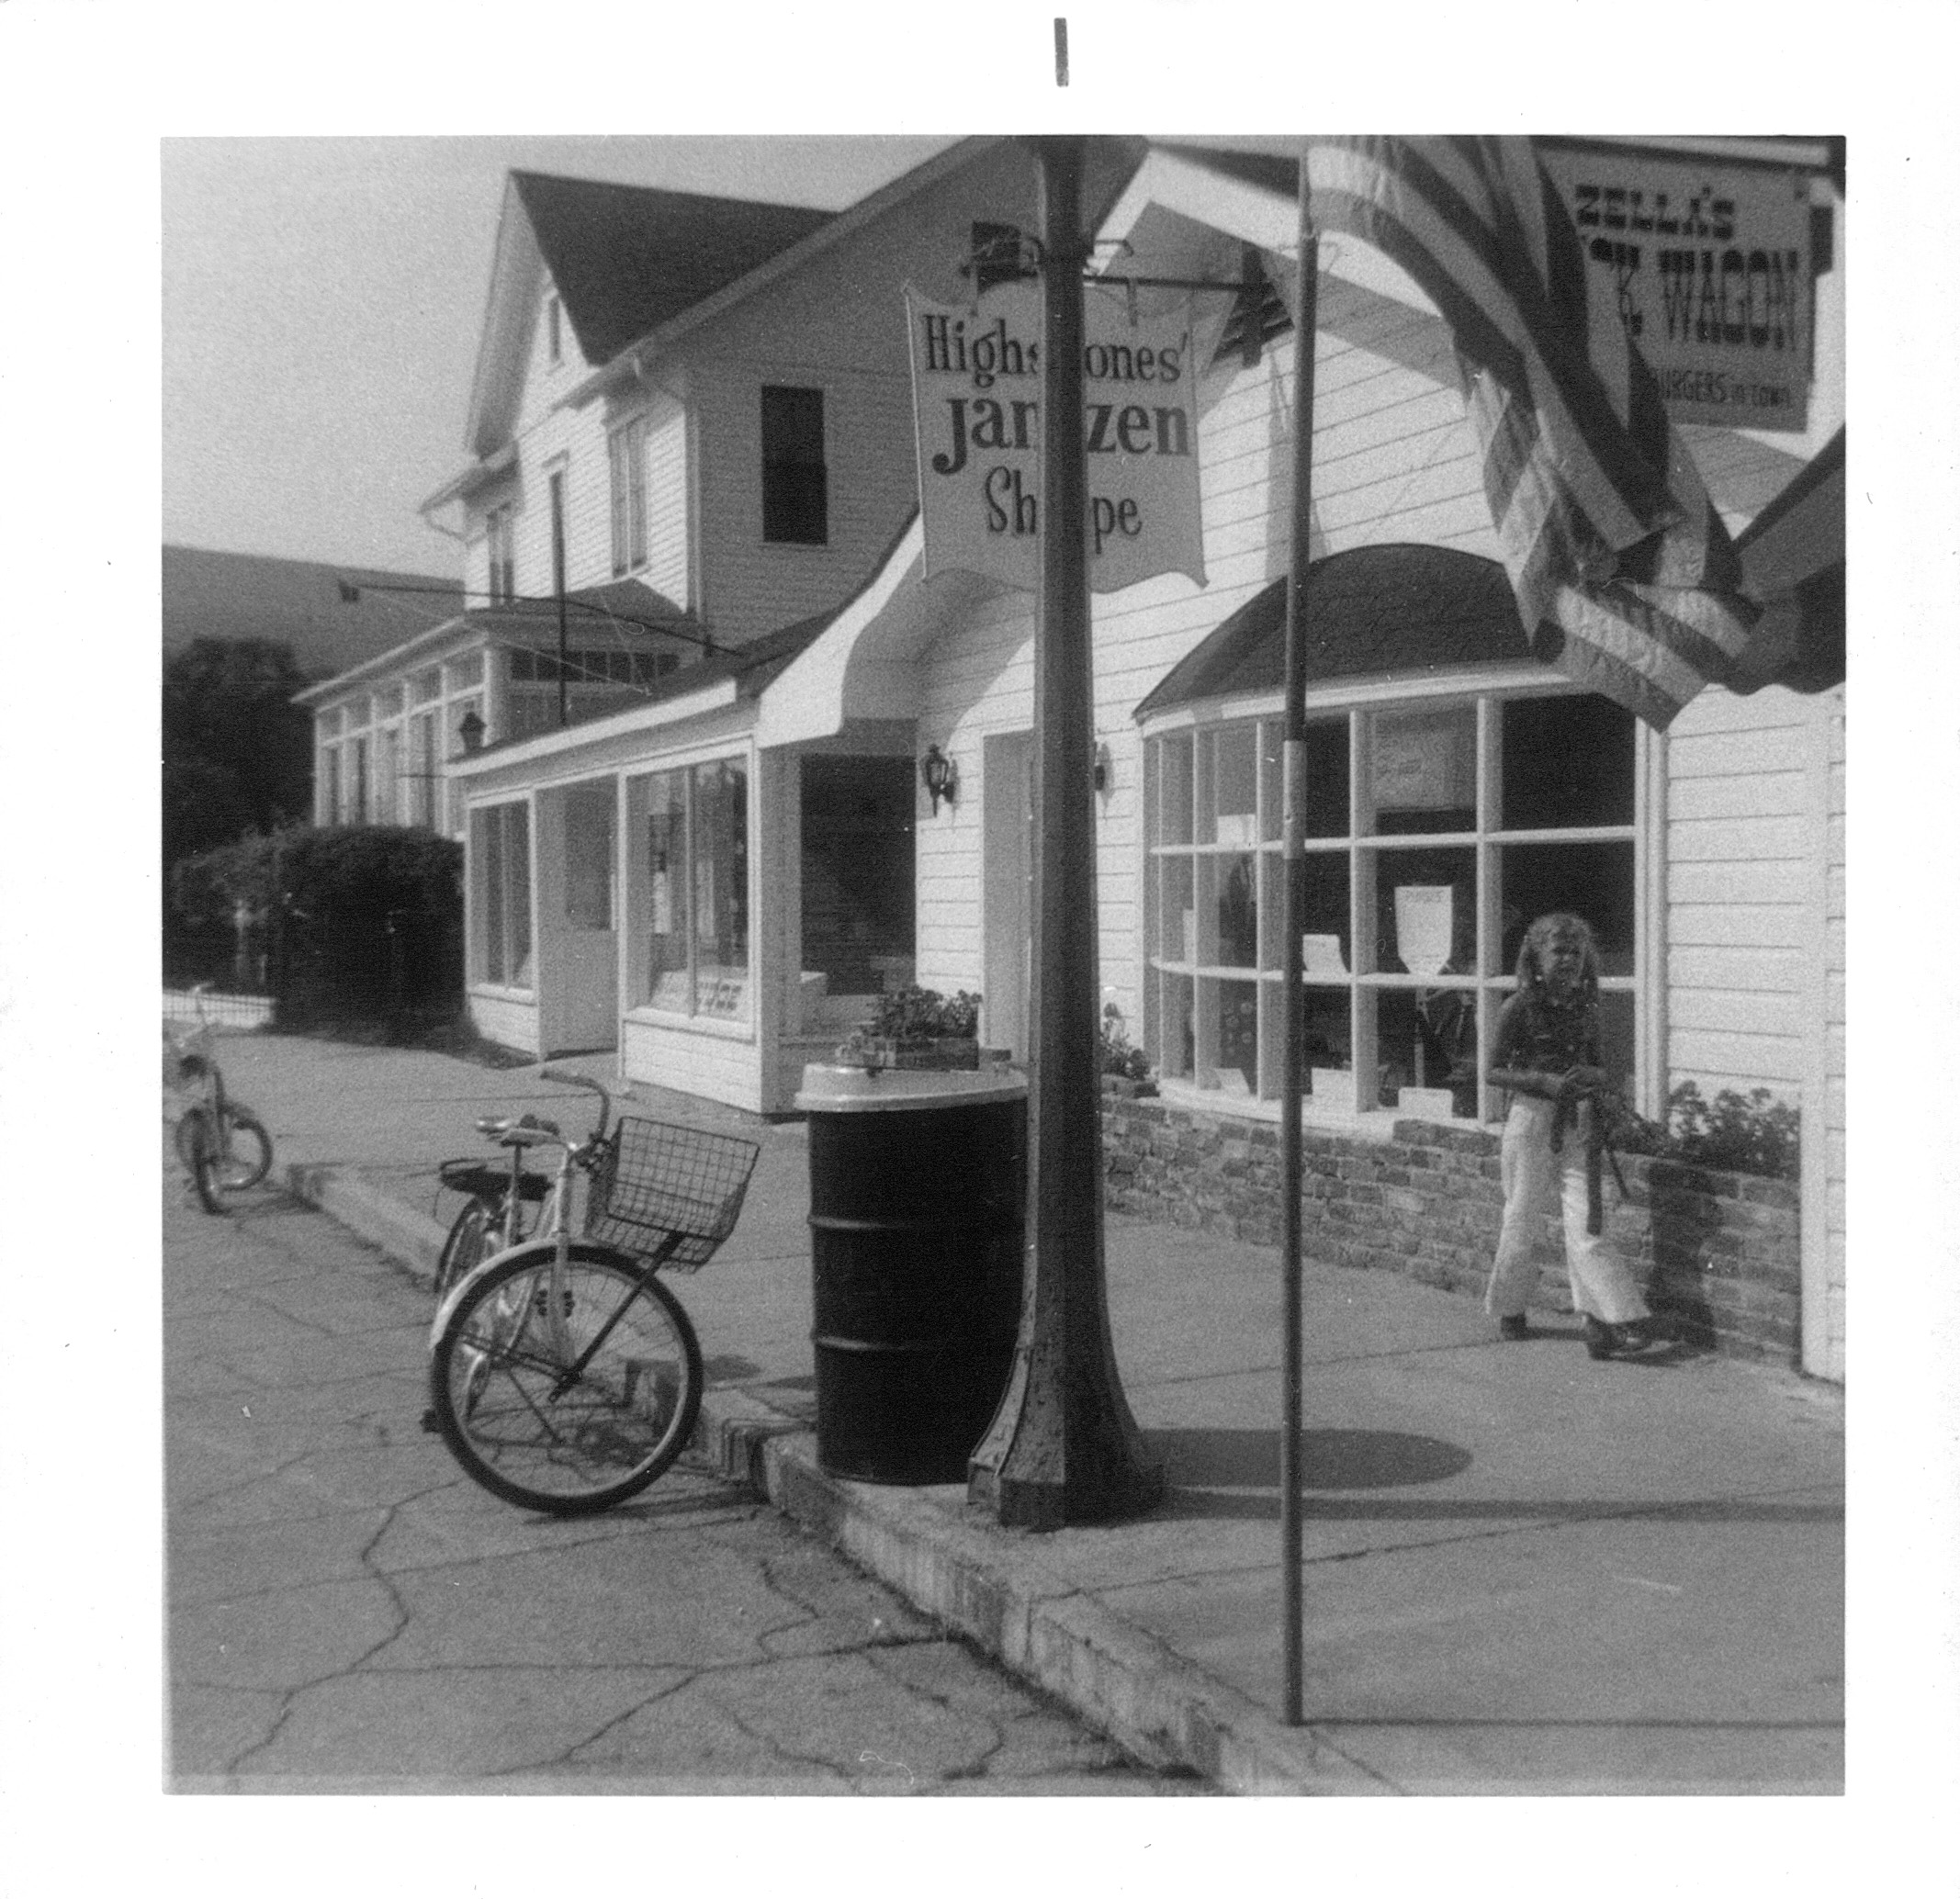 Frank and Joan's daughter Cheryl in 1969 in front of Highstone's Jantzen Shoppe, which is now Nephew's of Mackinac.